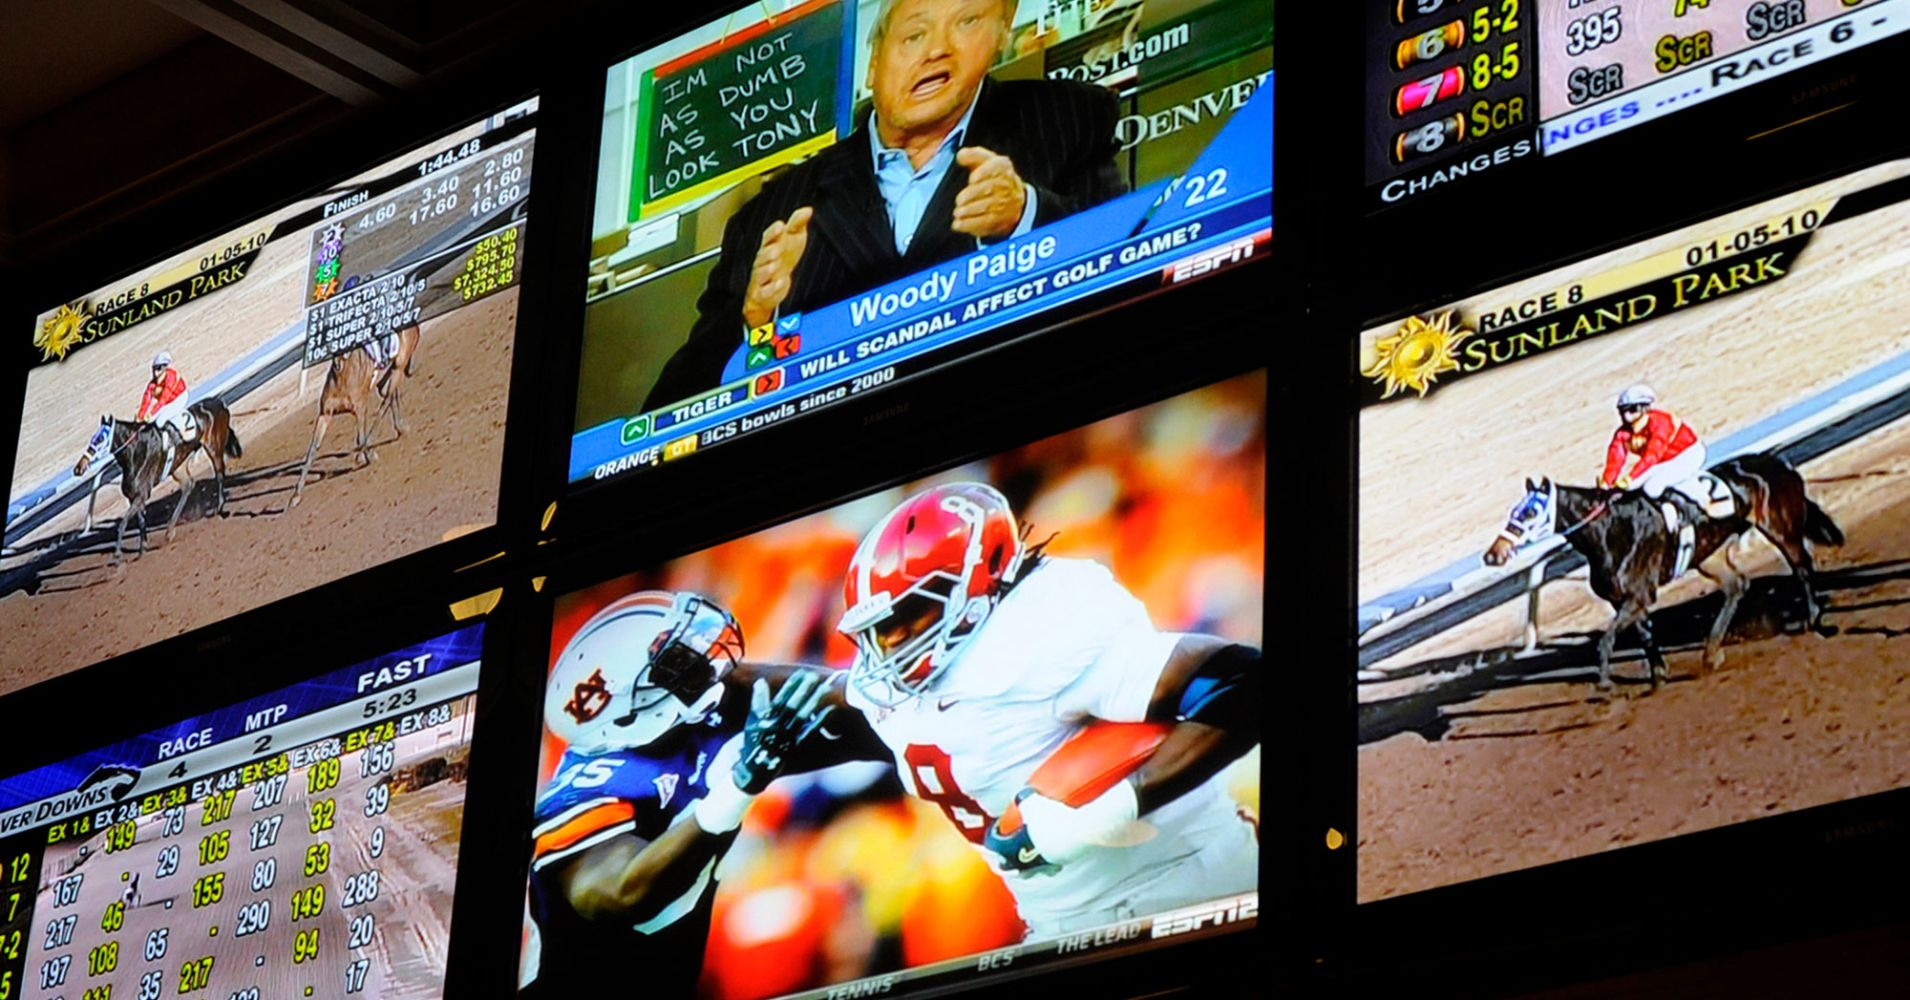 NFL playoff games joins horse racing in being legalized for wagering in the state of Delaware and gamblers took advantage of it at Delaware Park